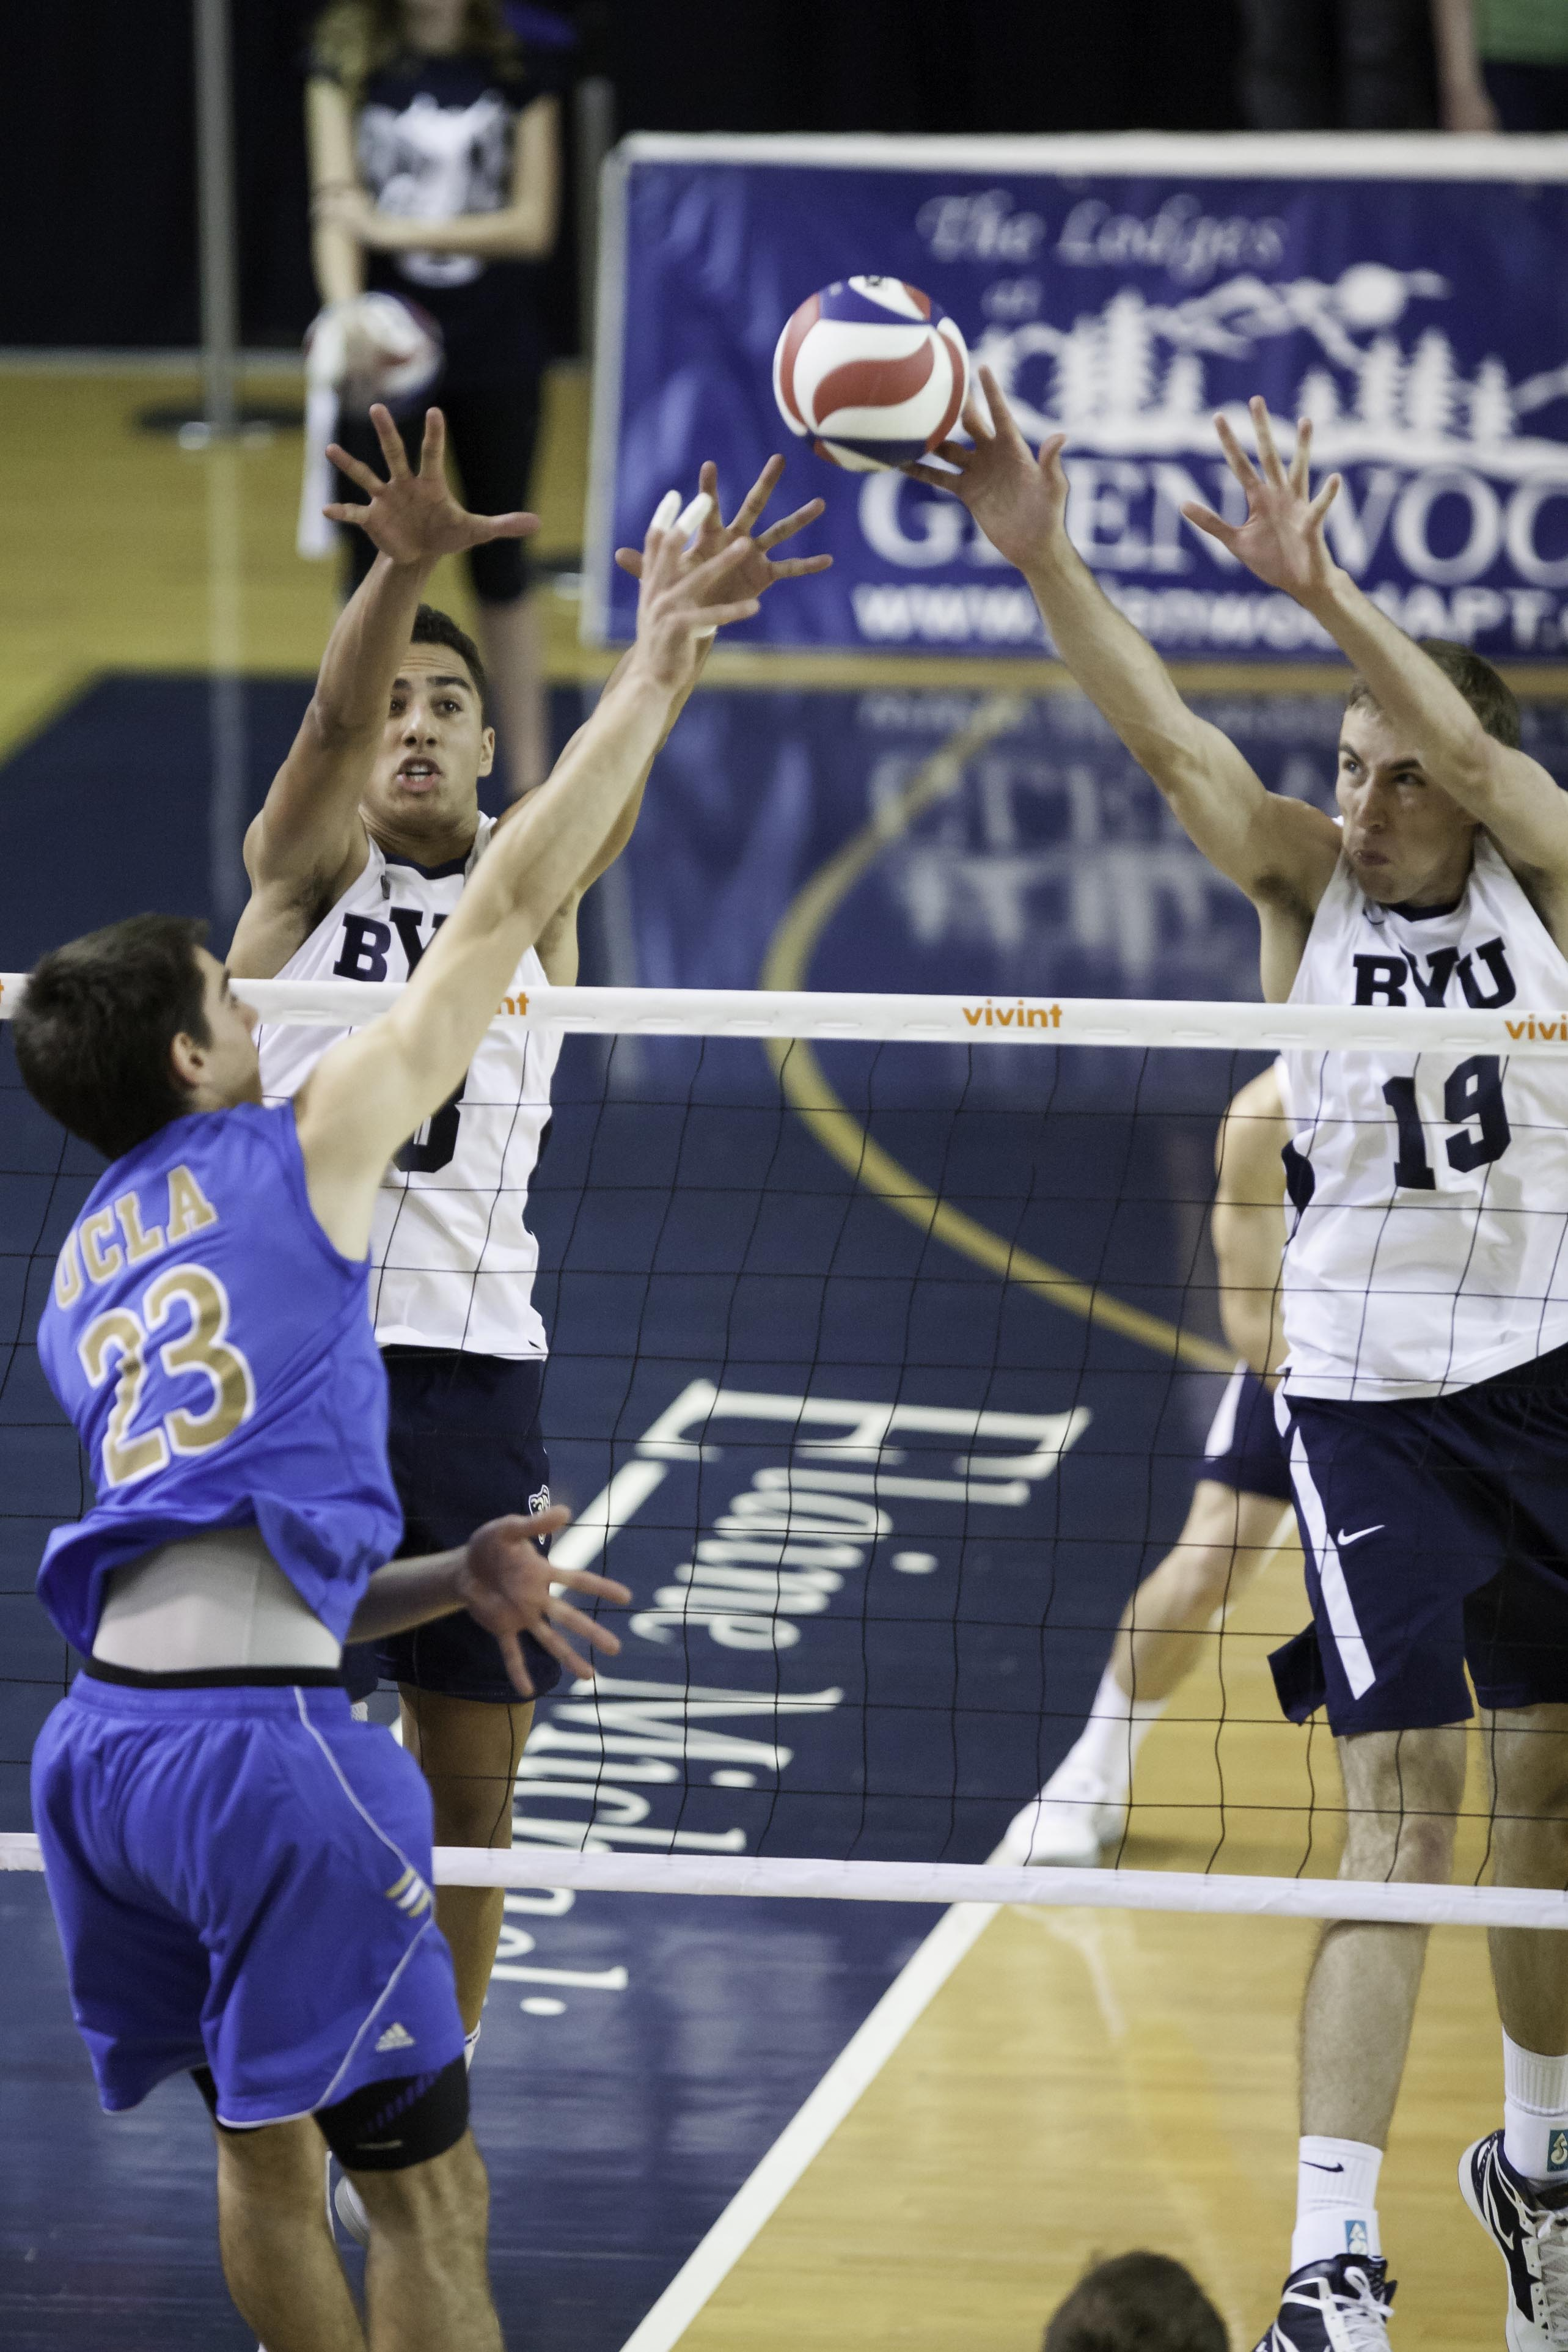 BYU's Ben Patch and Devin Young reach to block UCLA's Gonzalo Quiroga spike in Saturday's home match against UCLA. (Photo by Elliot Miller)